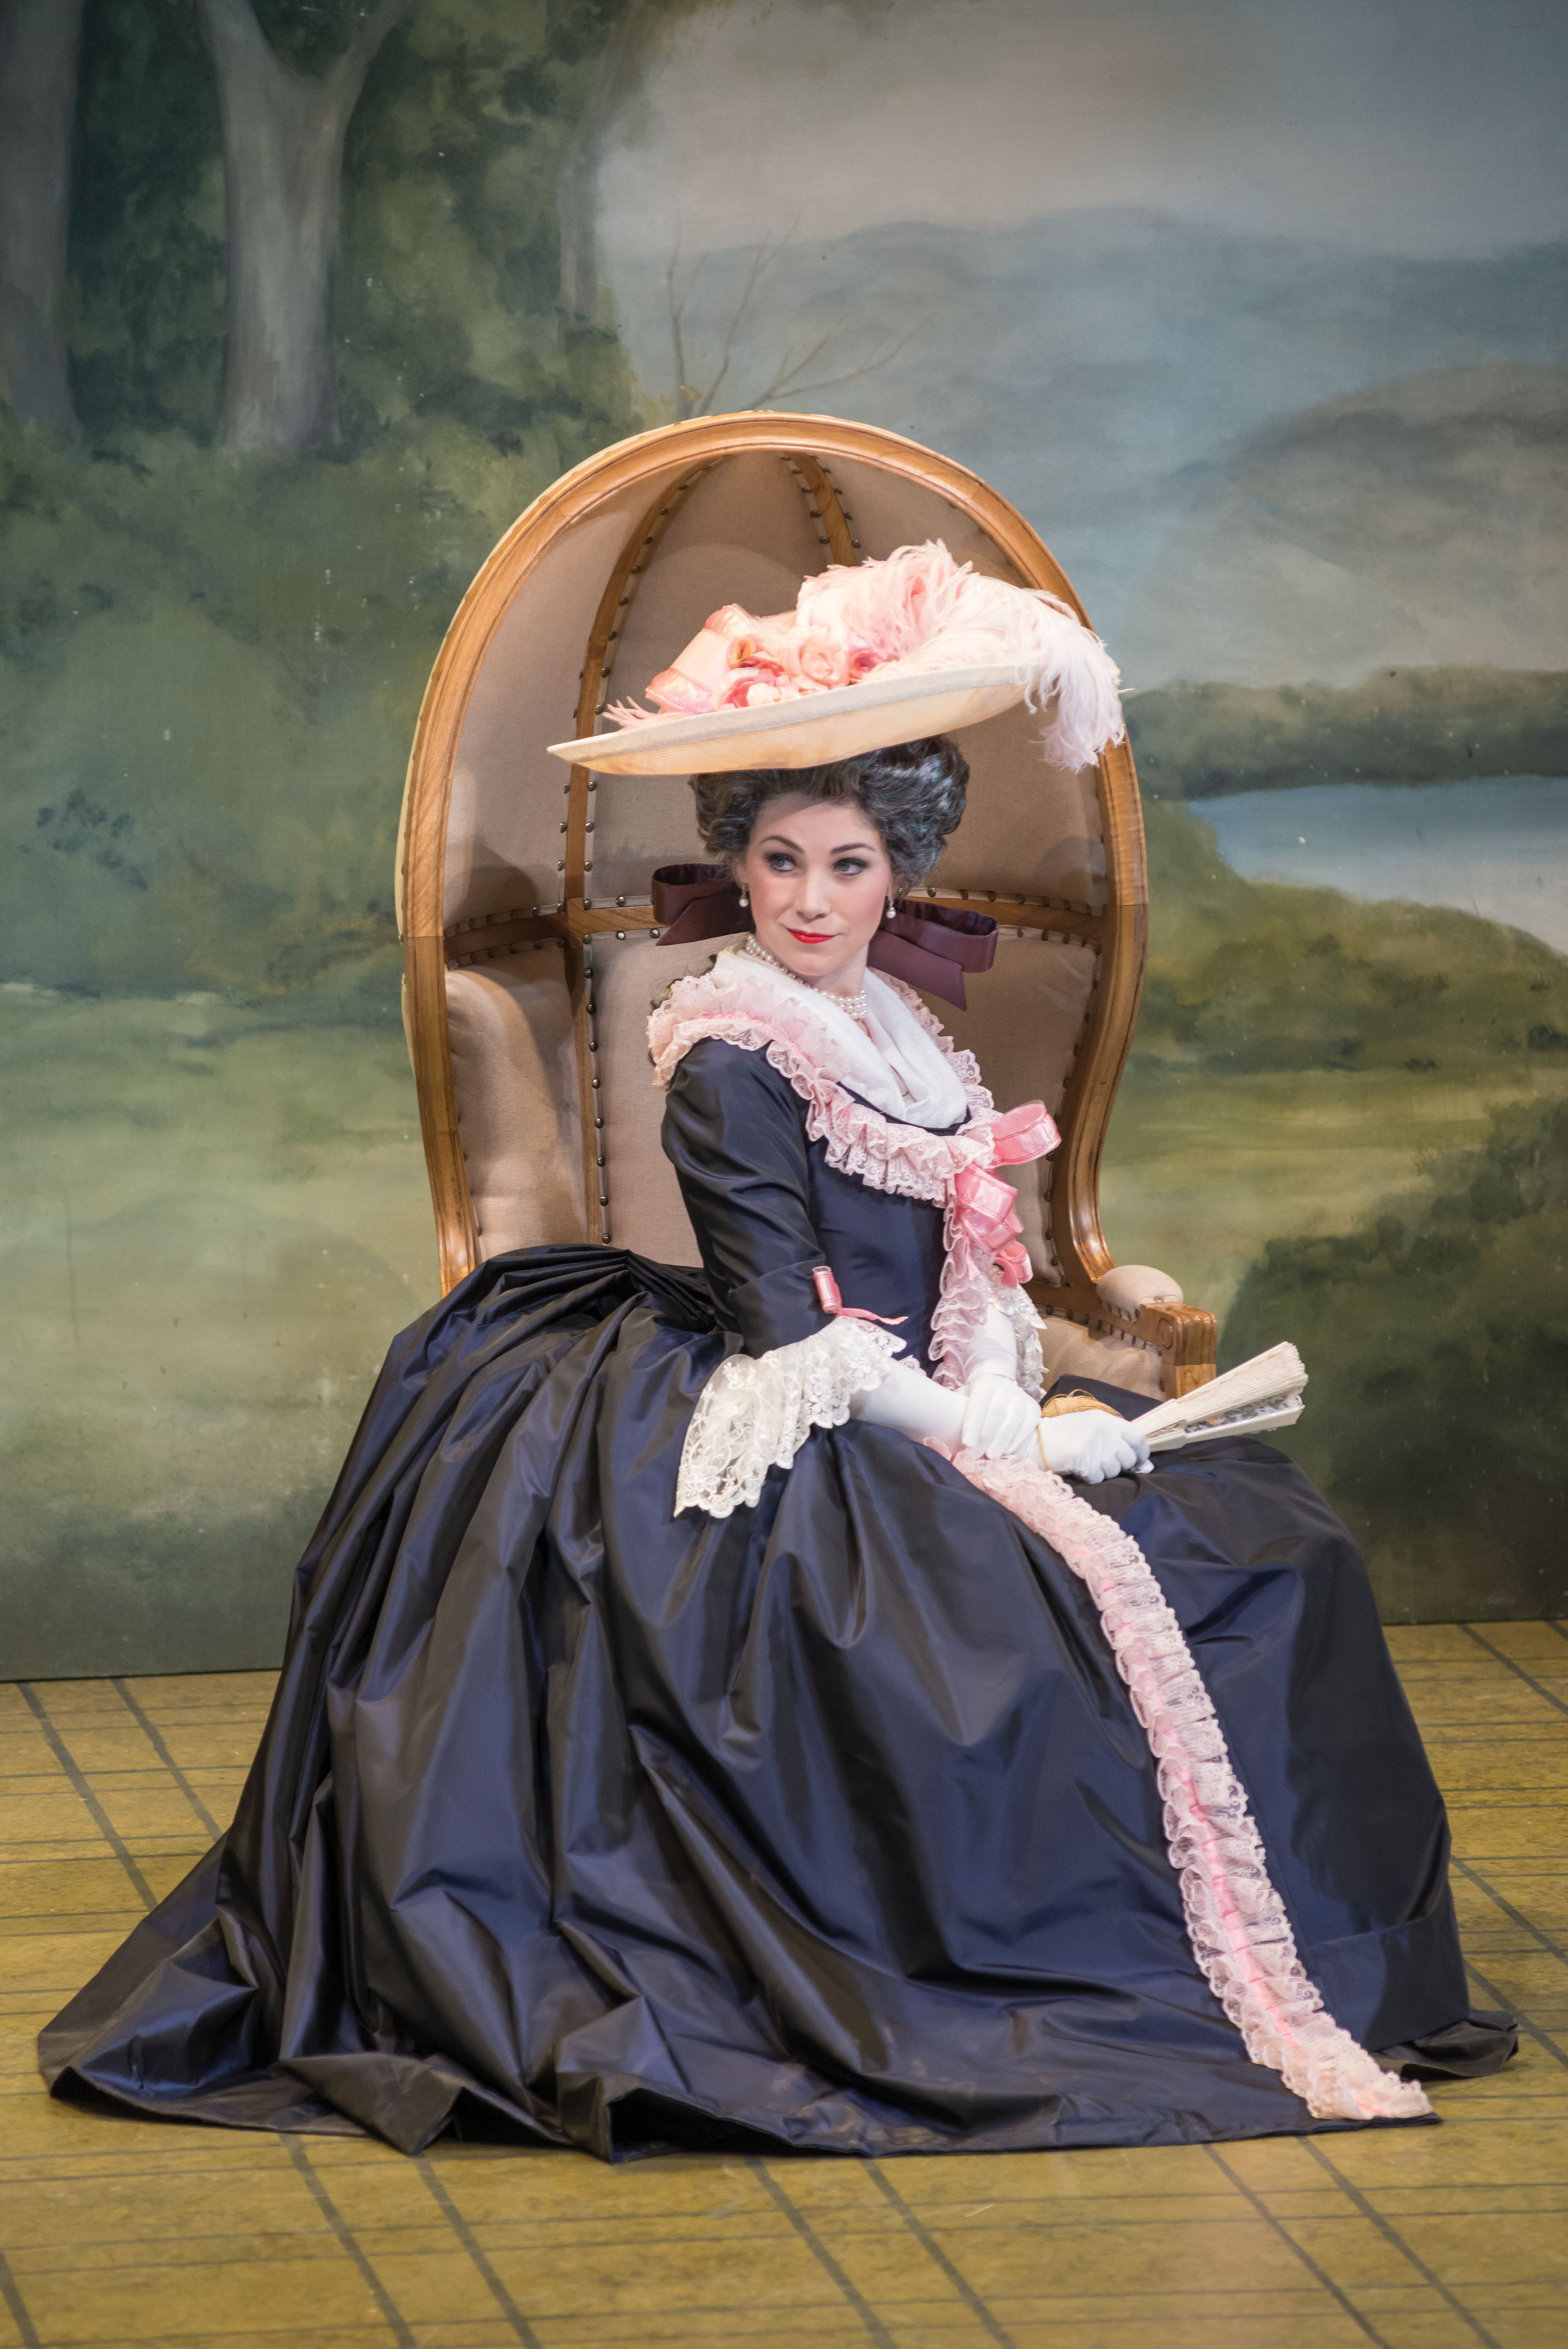 """essay on the marriage of figaro Play review of the marriage of figaro imagine that you were at a performance of """"the marriage of figaro"""" in 1784 write a review of the play for inclusion in a main-stream journal of the day."""